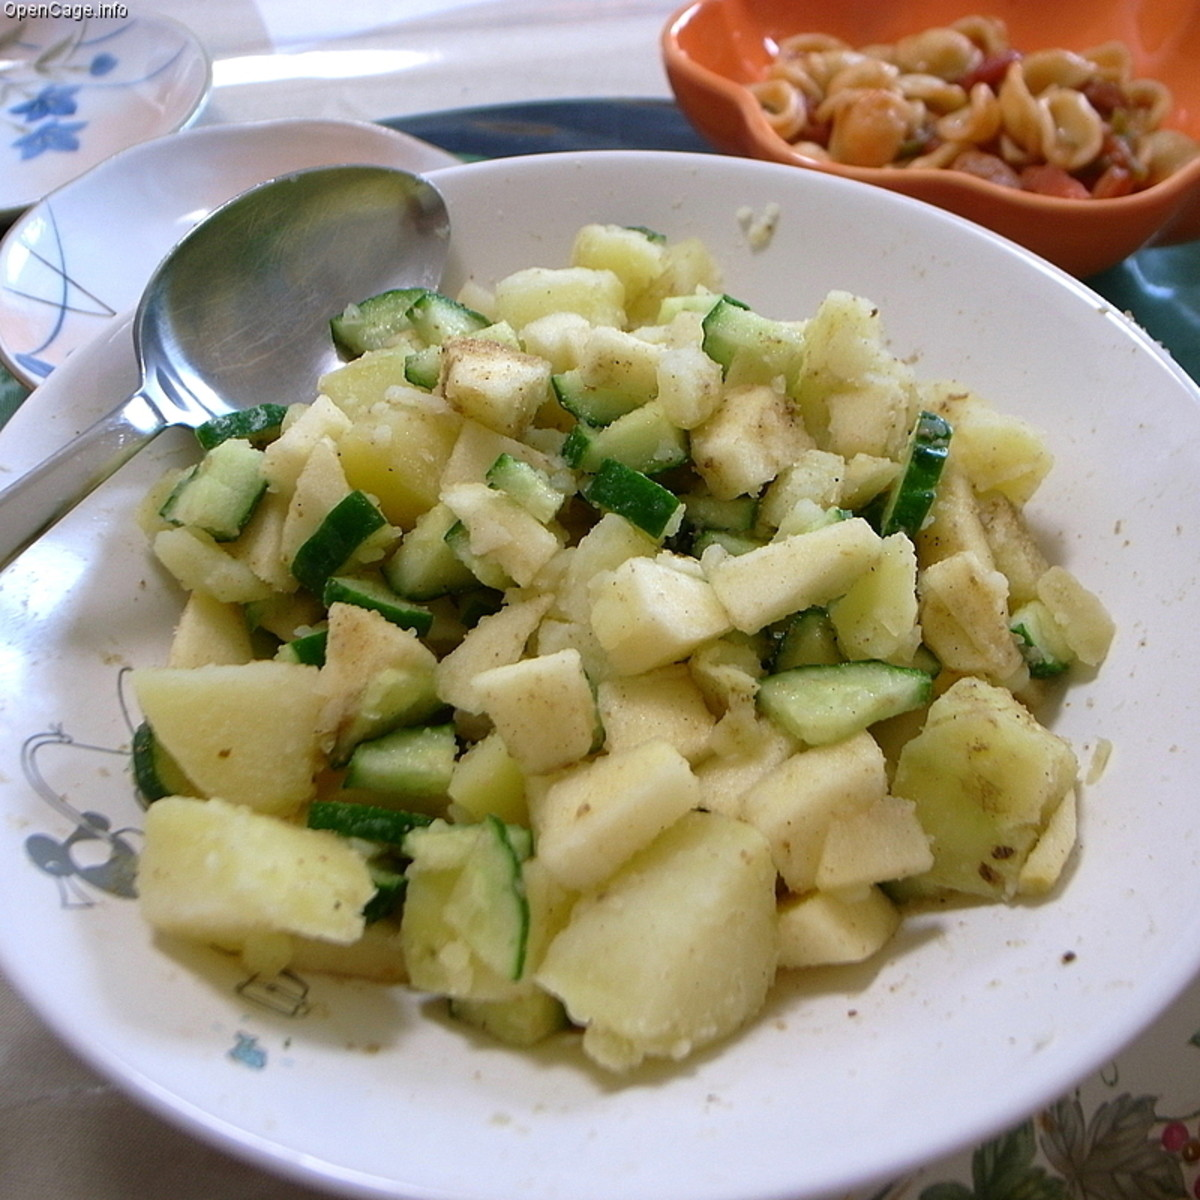 A variation with apples.